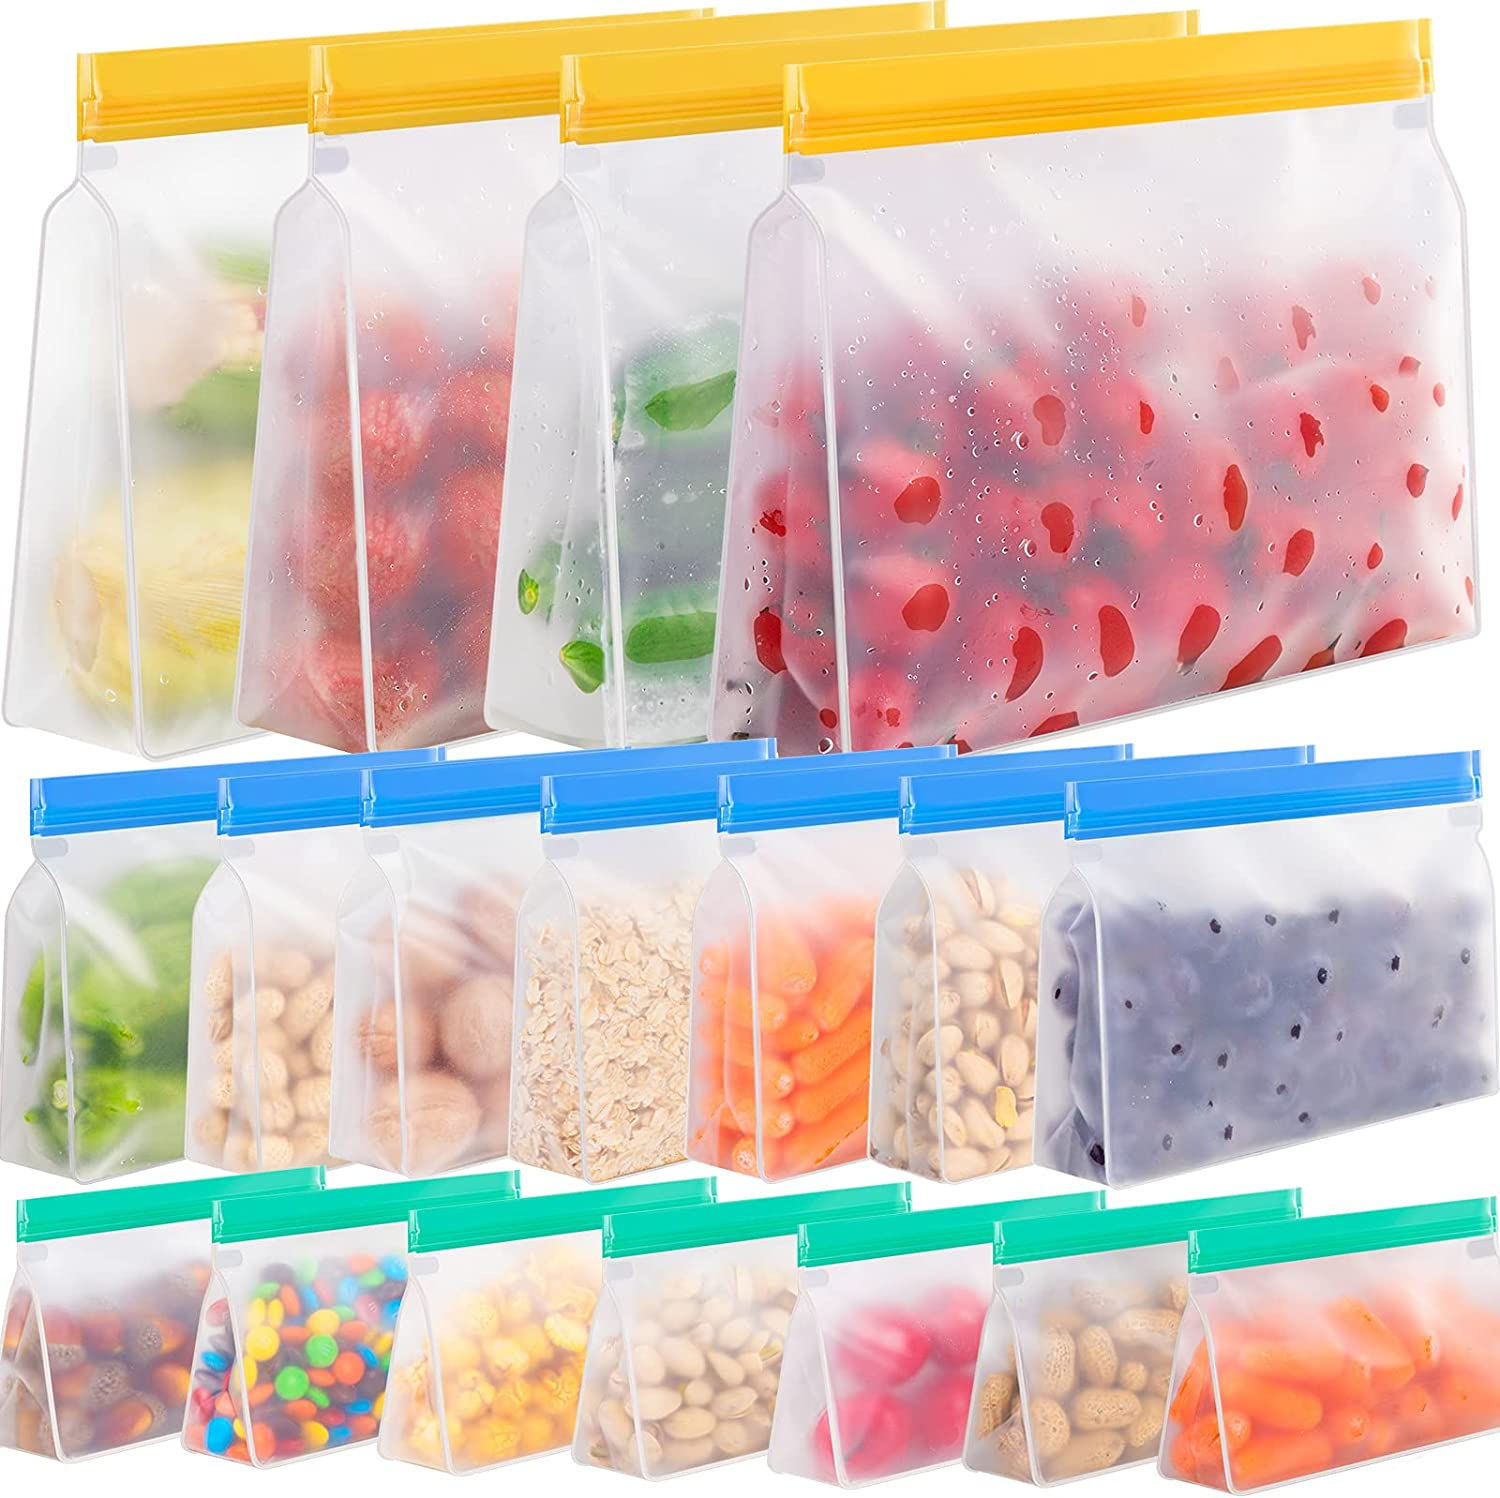 Reusable Storage Bags, 18 Pack Reusable Freezer Bags Stand Up, Leakproof Reusable Bags Silicone, Reusable Gallon Bags, Reusable Sandwich Bags, Reusable Food Storage Bags